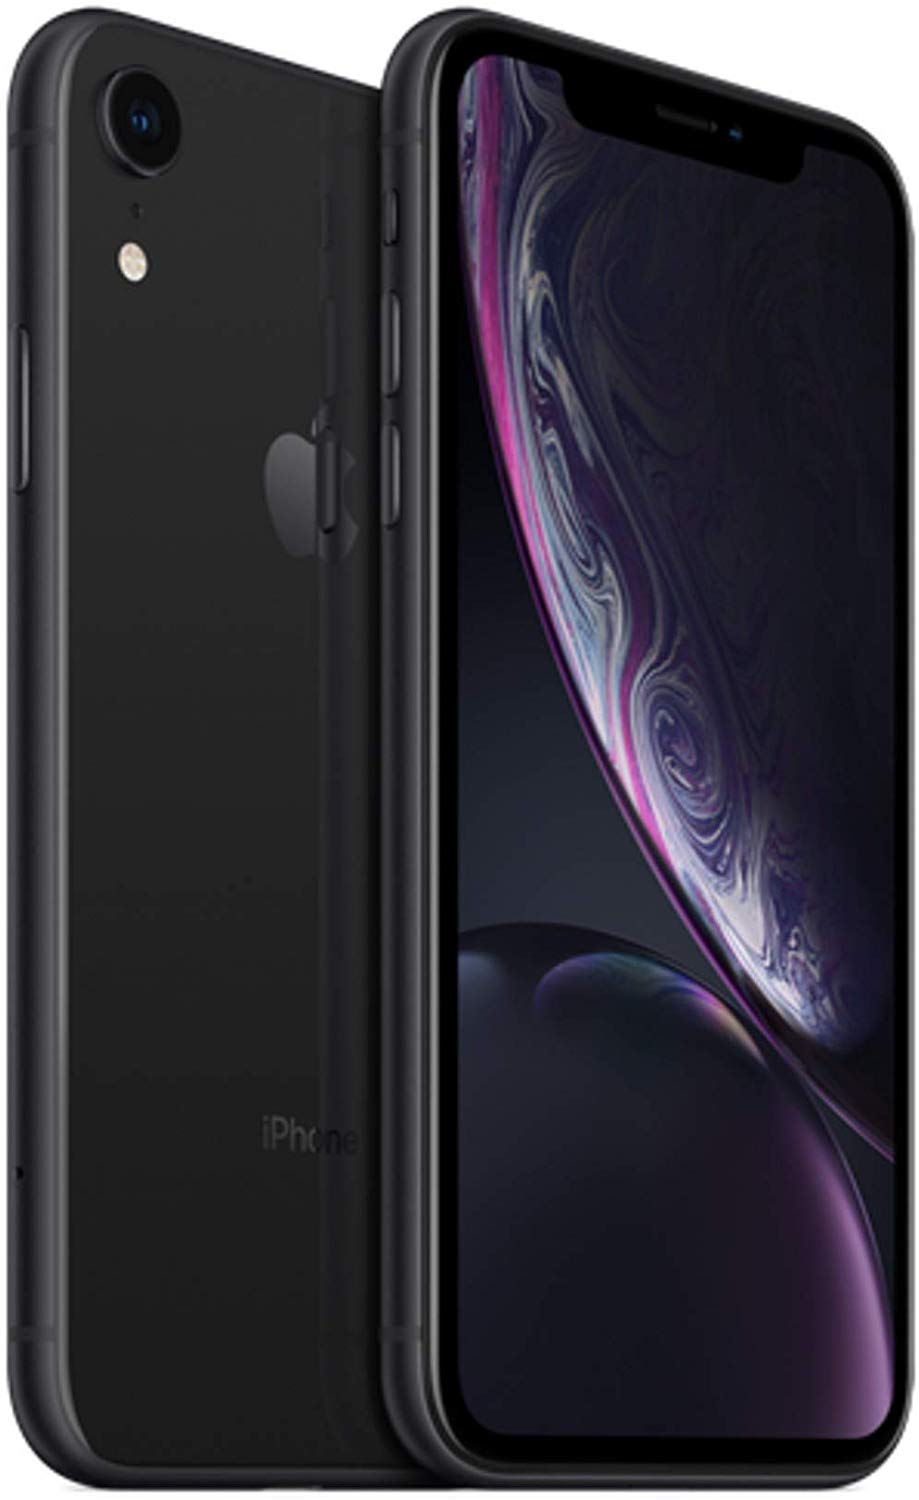 Review of Apple iPhone XR, 64GB, Black - Fully Unlocked